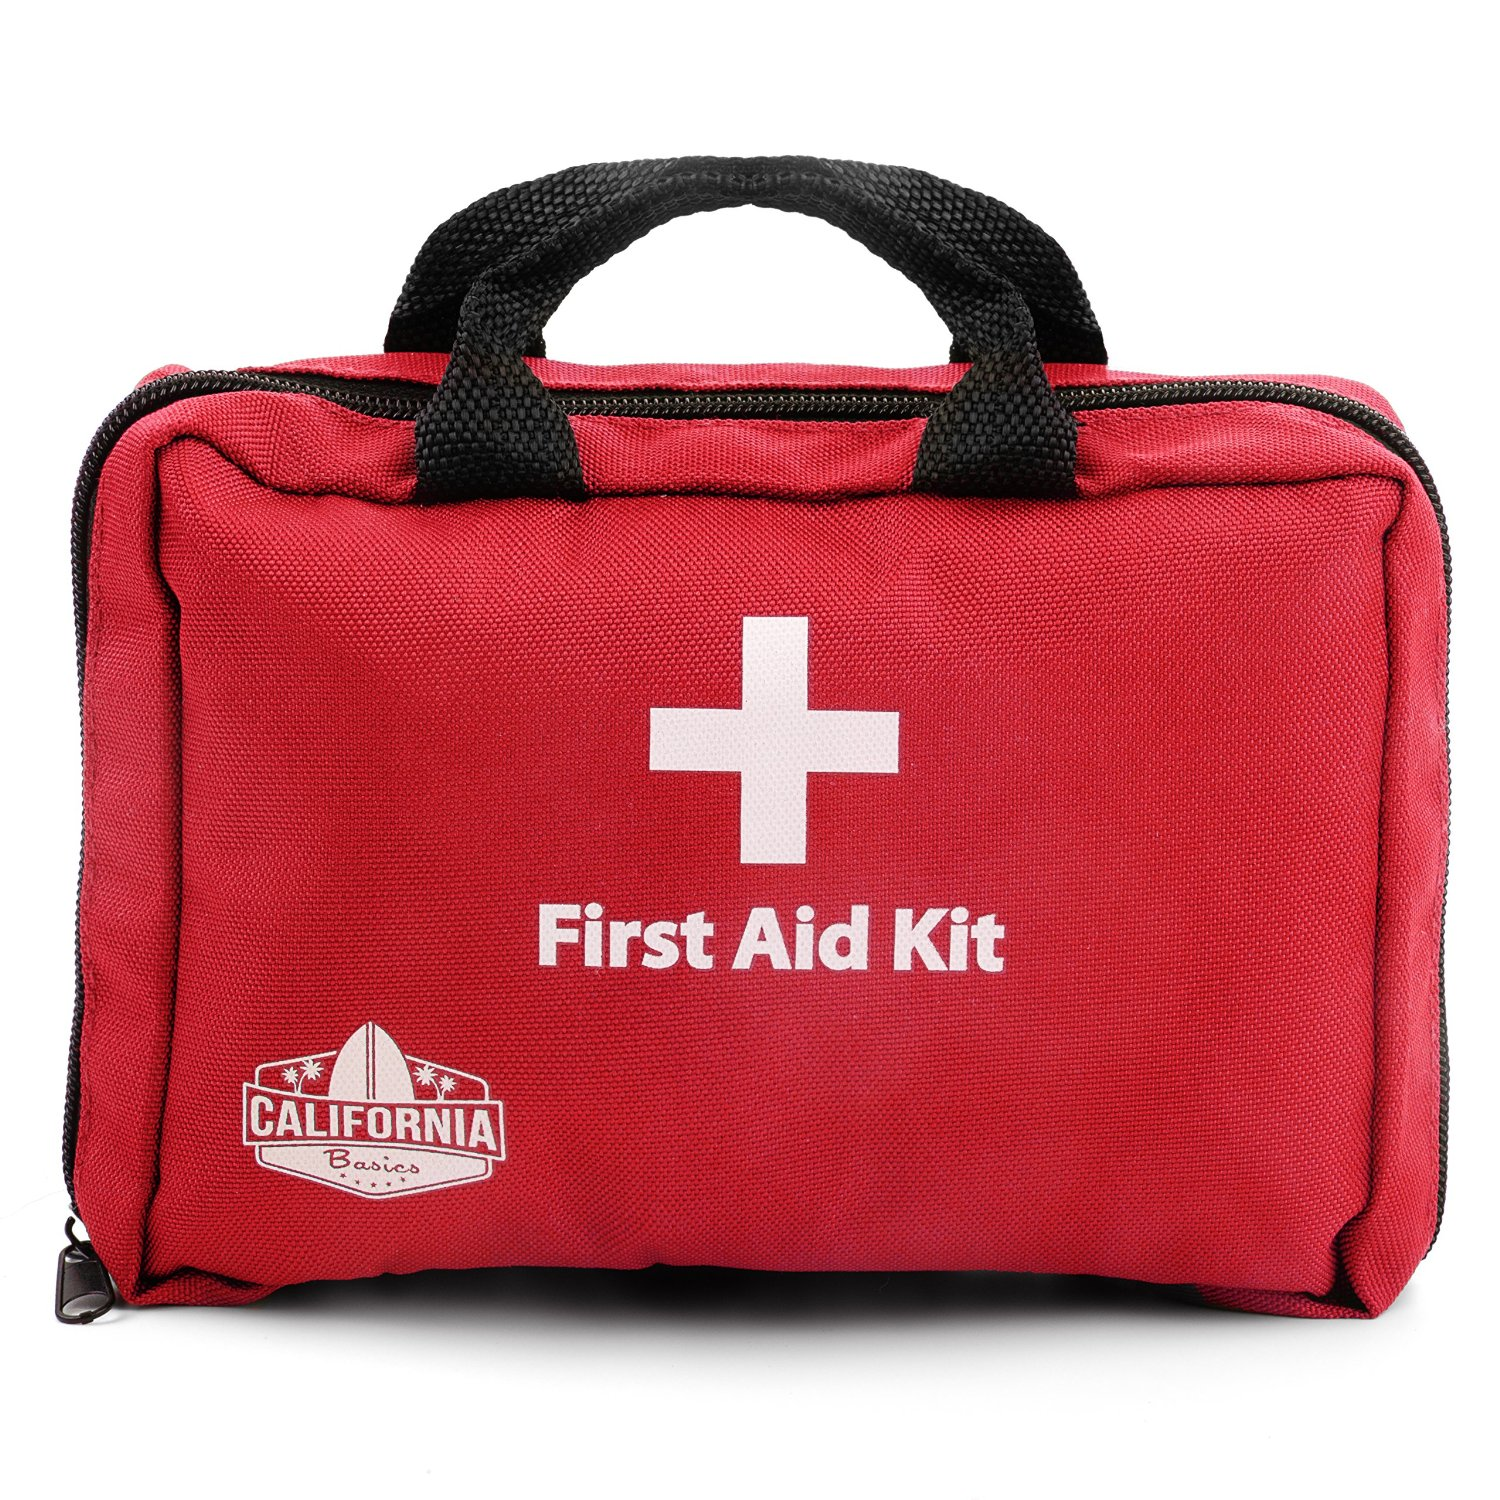 California Basics 115 Piece Portable Travel First Aid Essentials Kit with Carrying Case, Includes Eye Wash, Cold Pack, Emergency Blanket for Home, Office, Backpack, Travel